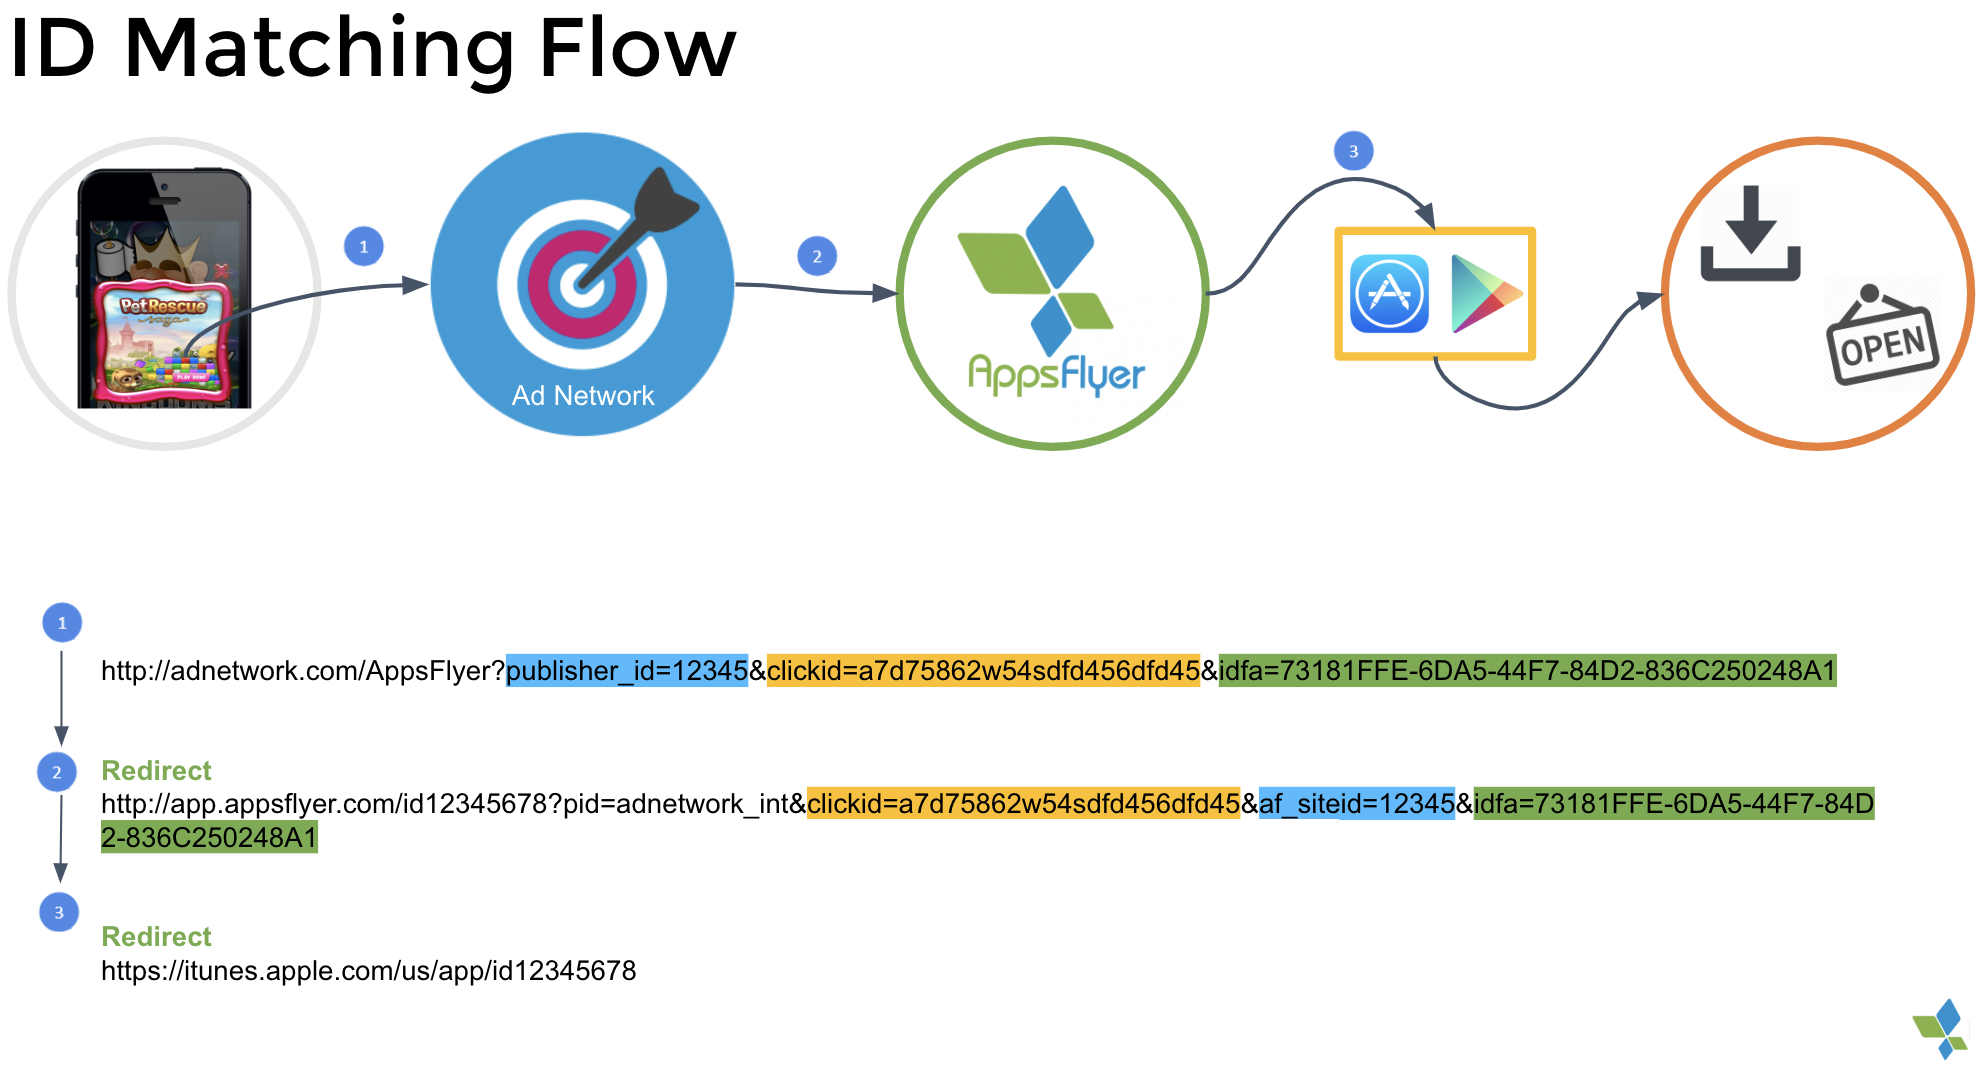 Attribution flow in AppsFlyer: ID matching flow